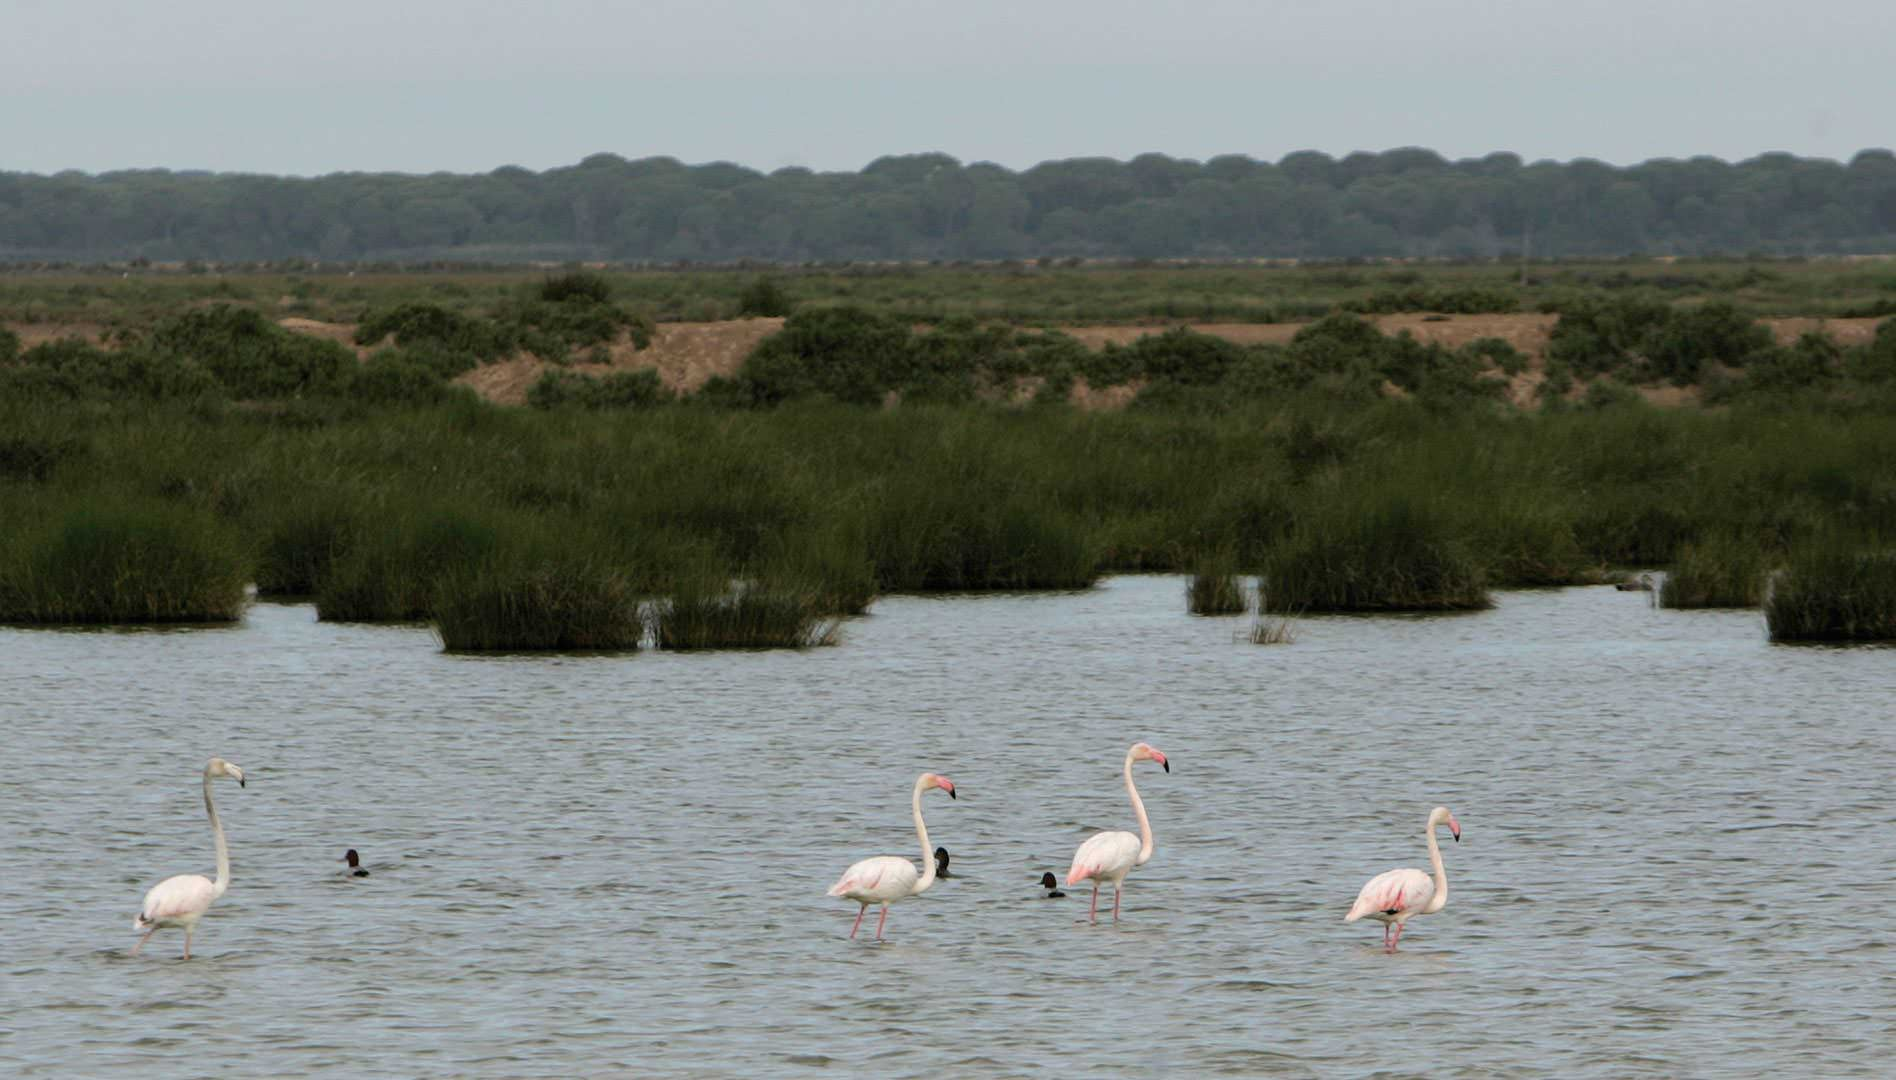 The marshes of Doñana National Park, in Sanlúcar de Barrameda.